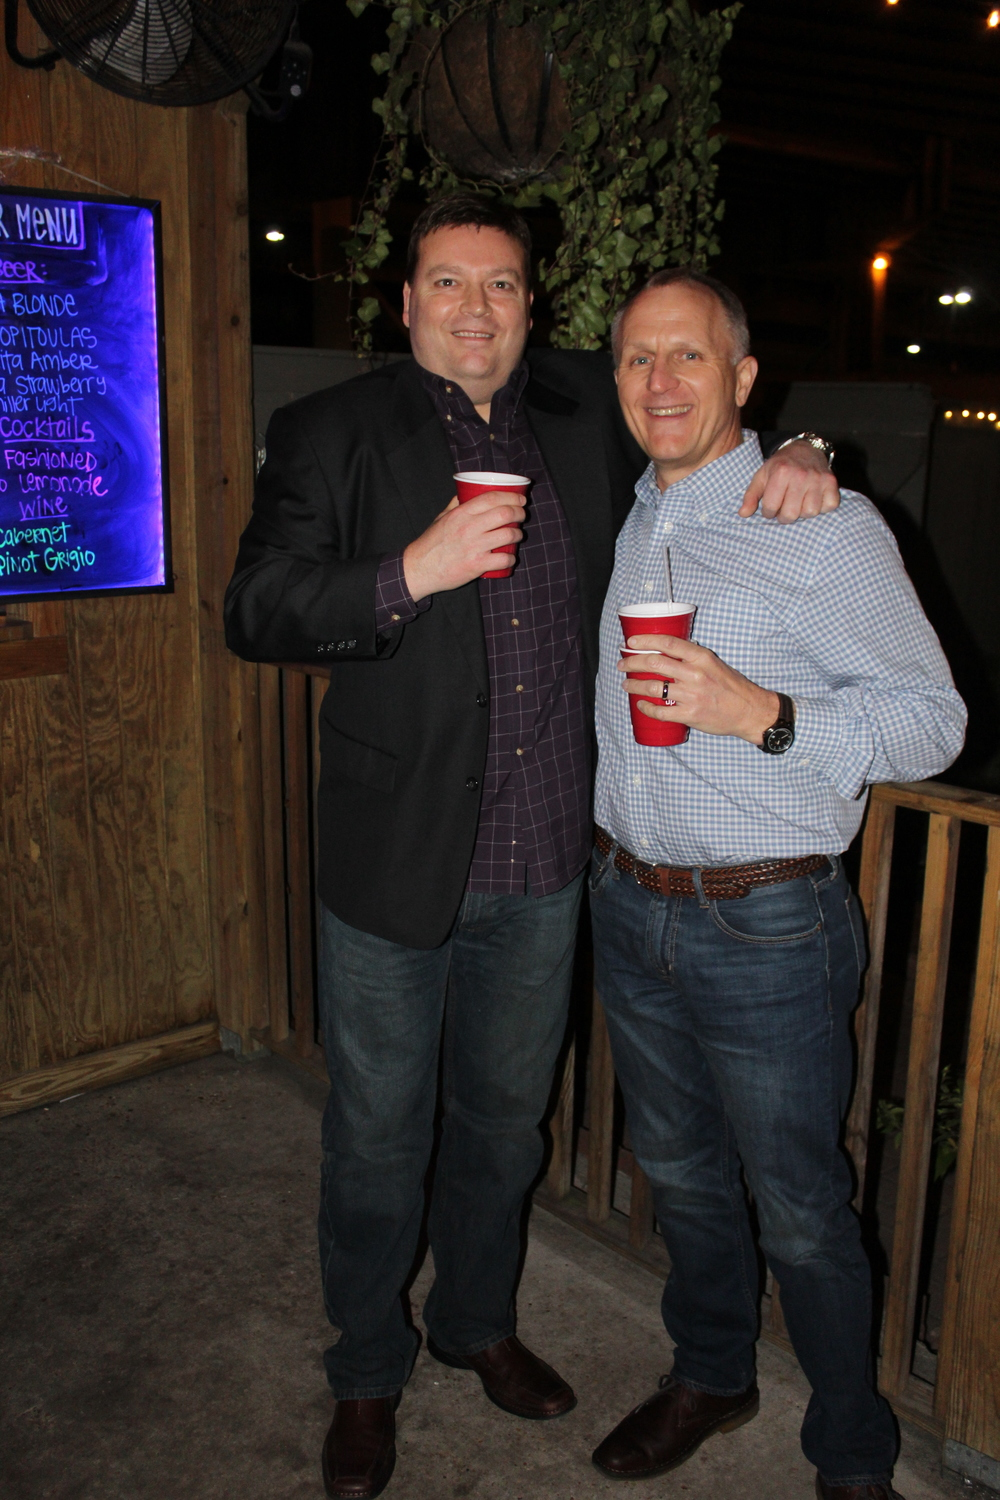 Updater's Michael Clarner with friend and partner, Allan Lamar, of EWS Group